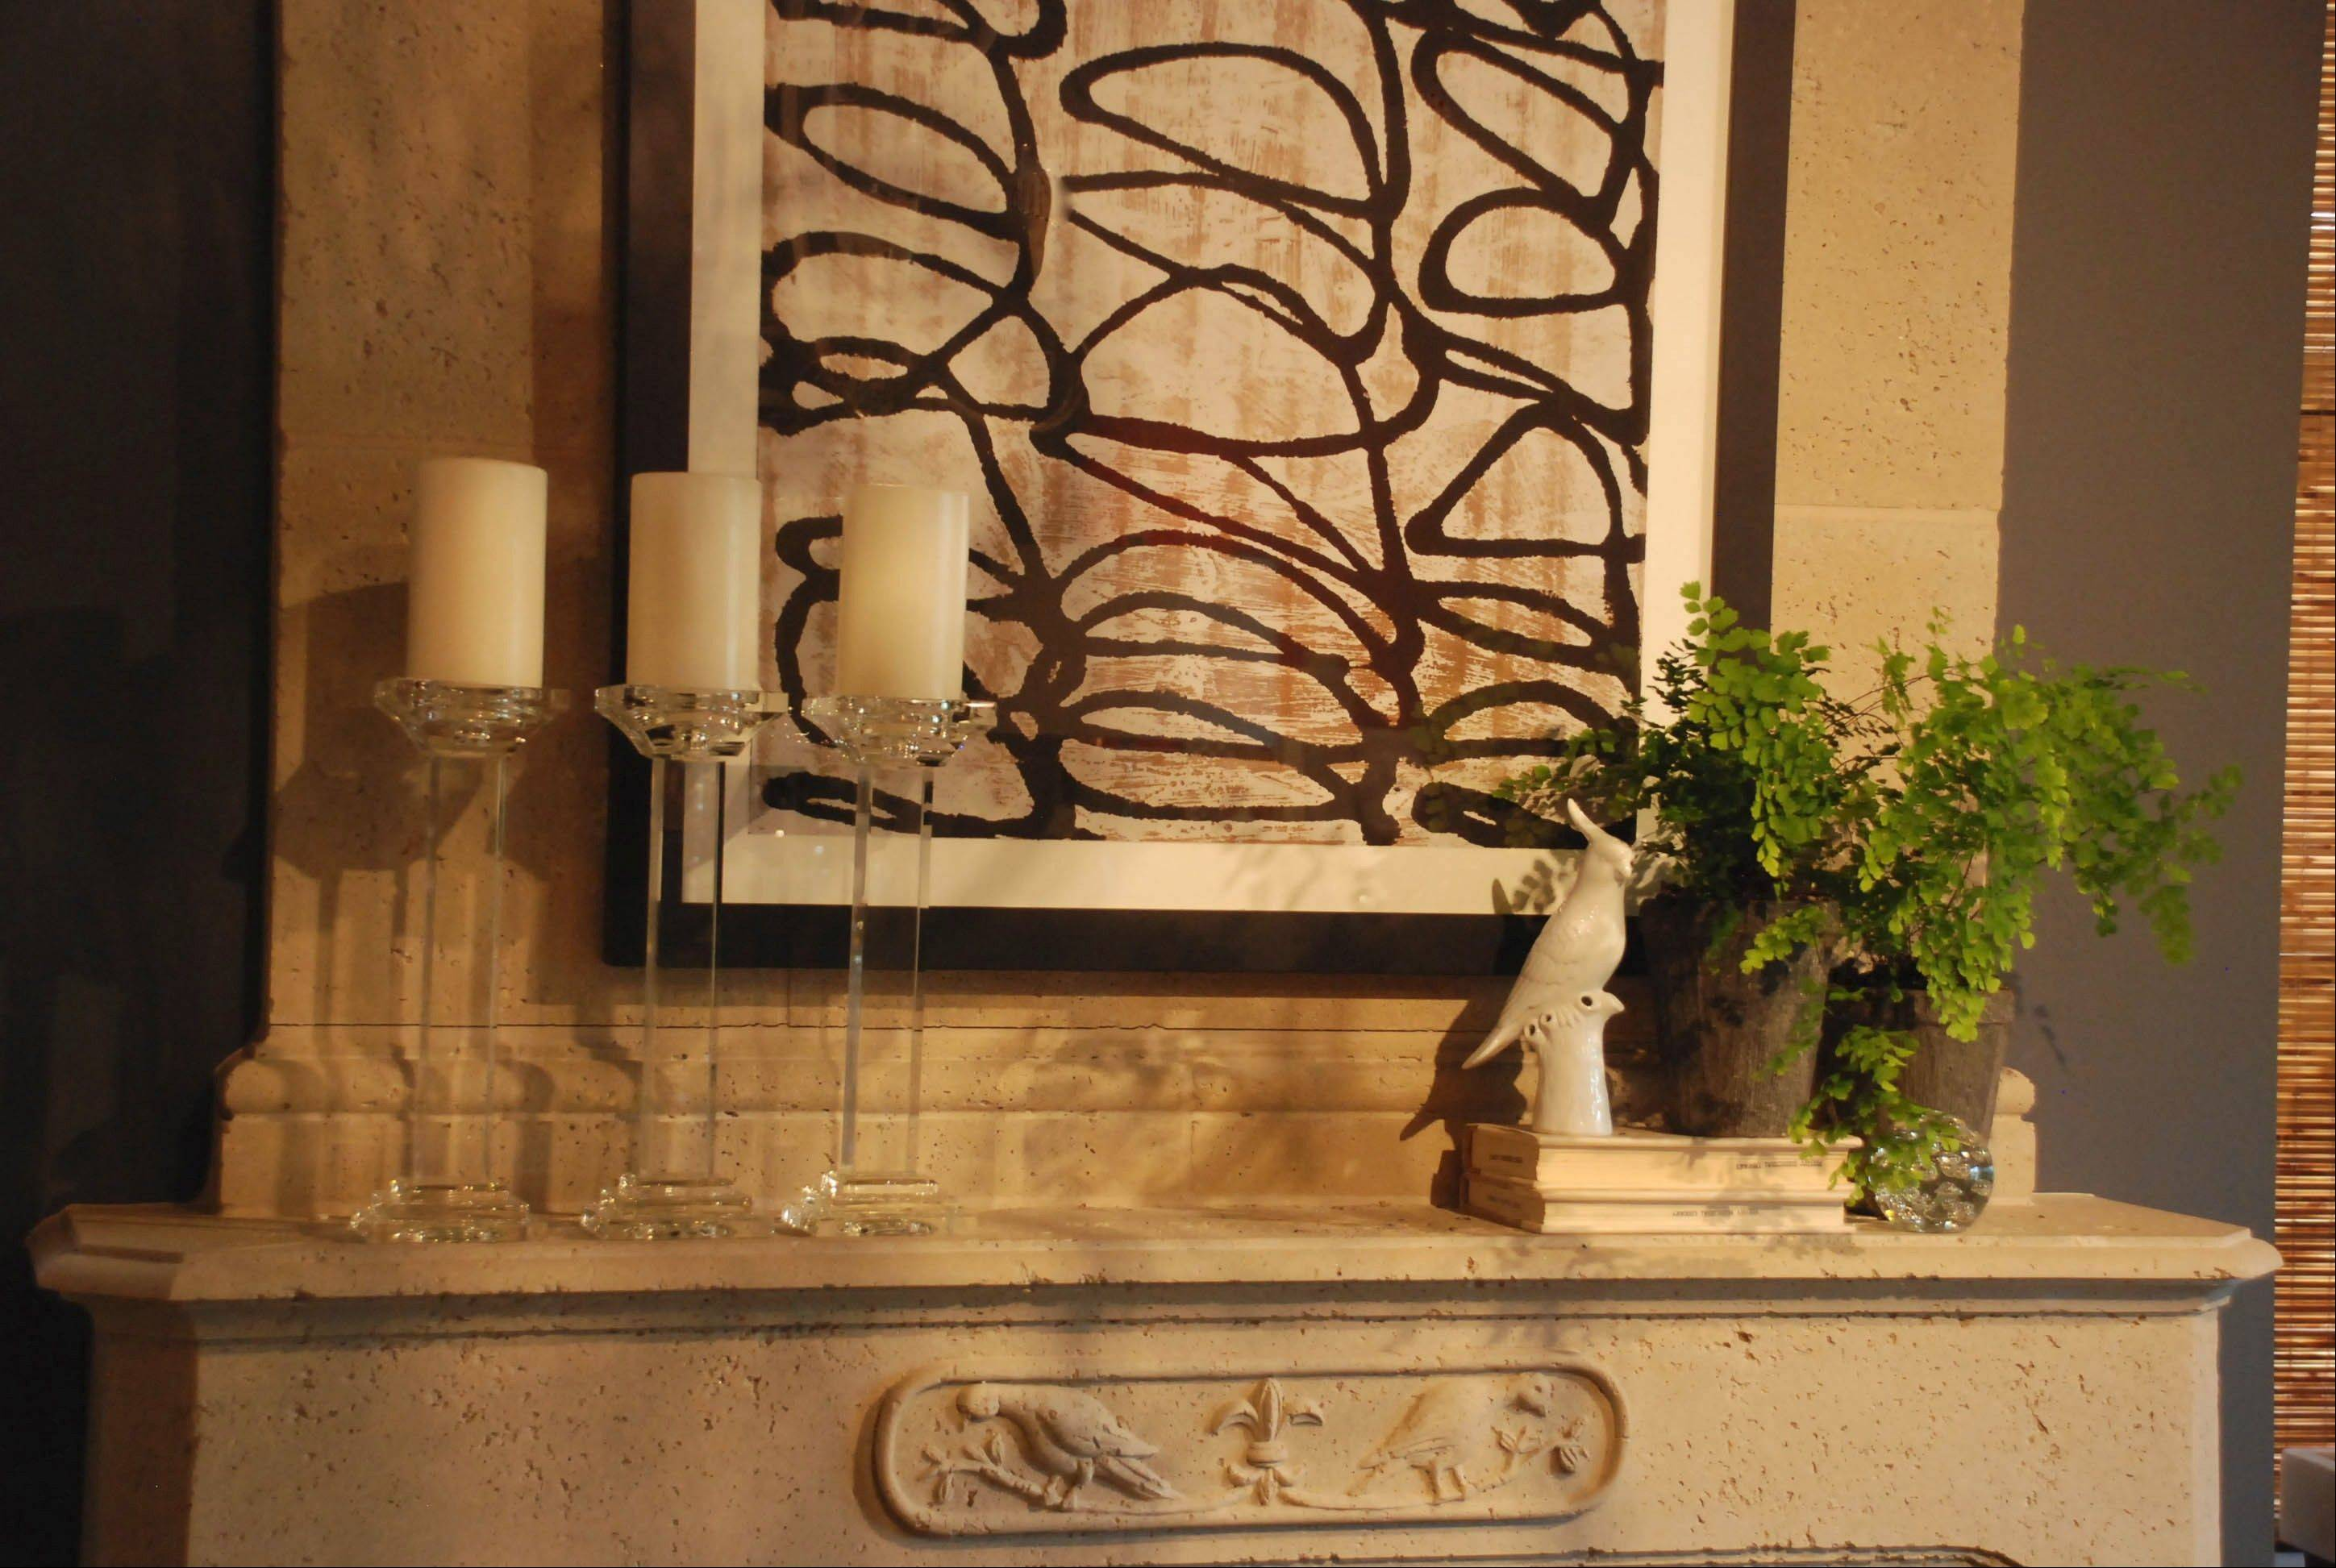 Your mantel display is the eye-catching focal point of the room, so trick it up for the season.